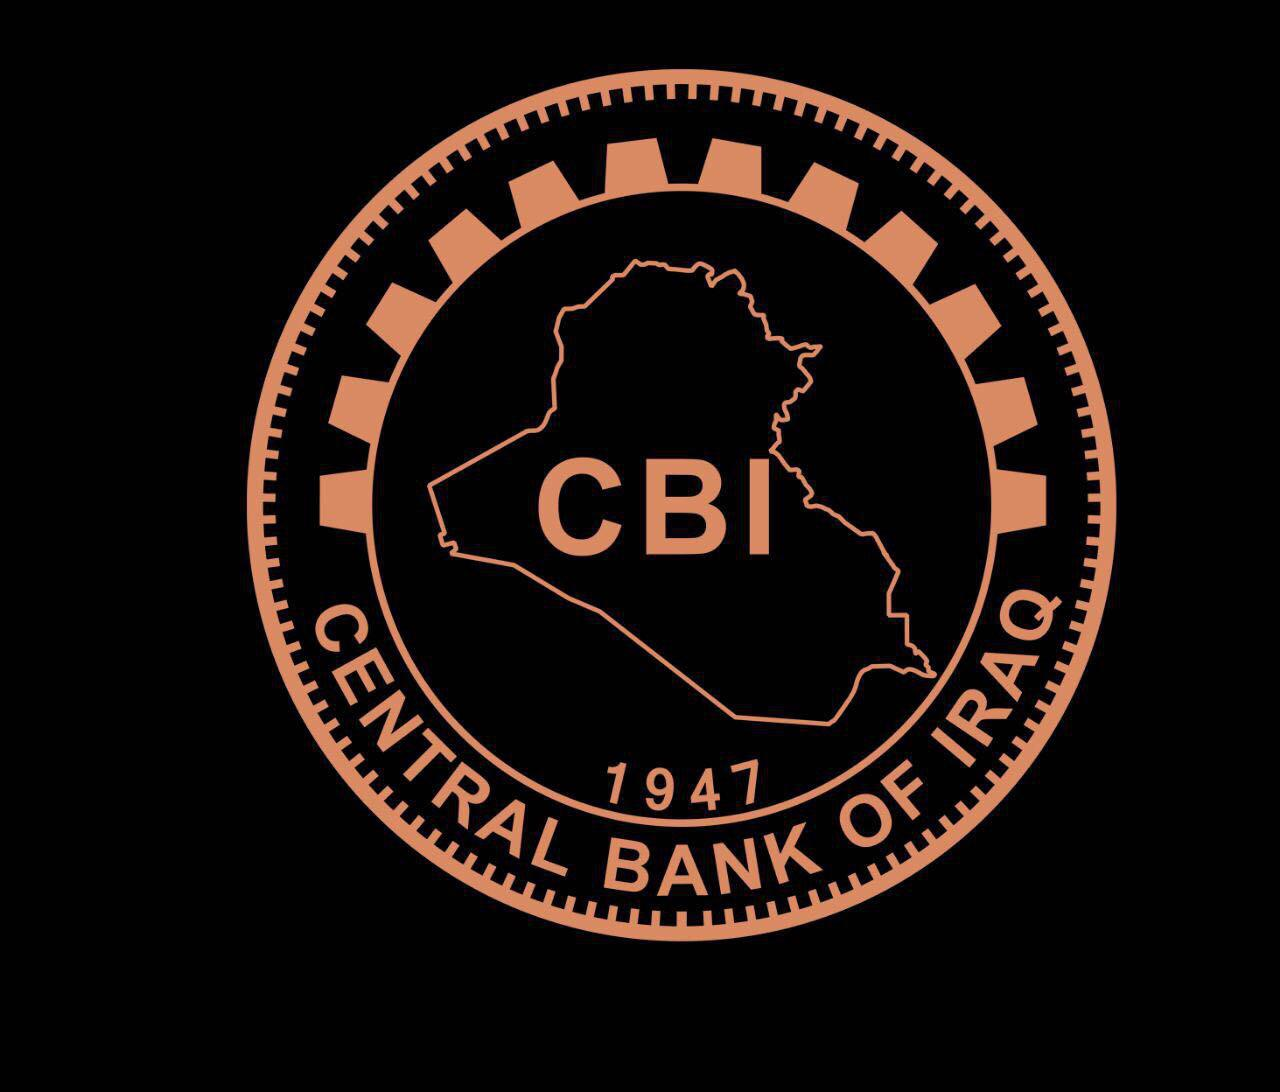 Baghdad Iraq Tradelink The Central Bank Of Cbi Announced A Banking Settlement Between